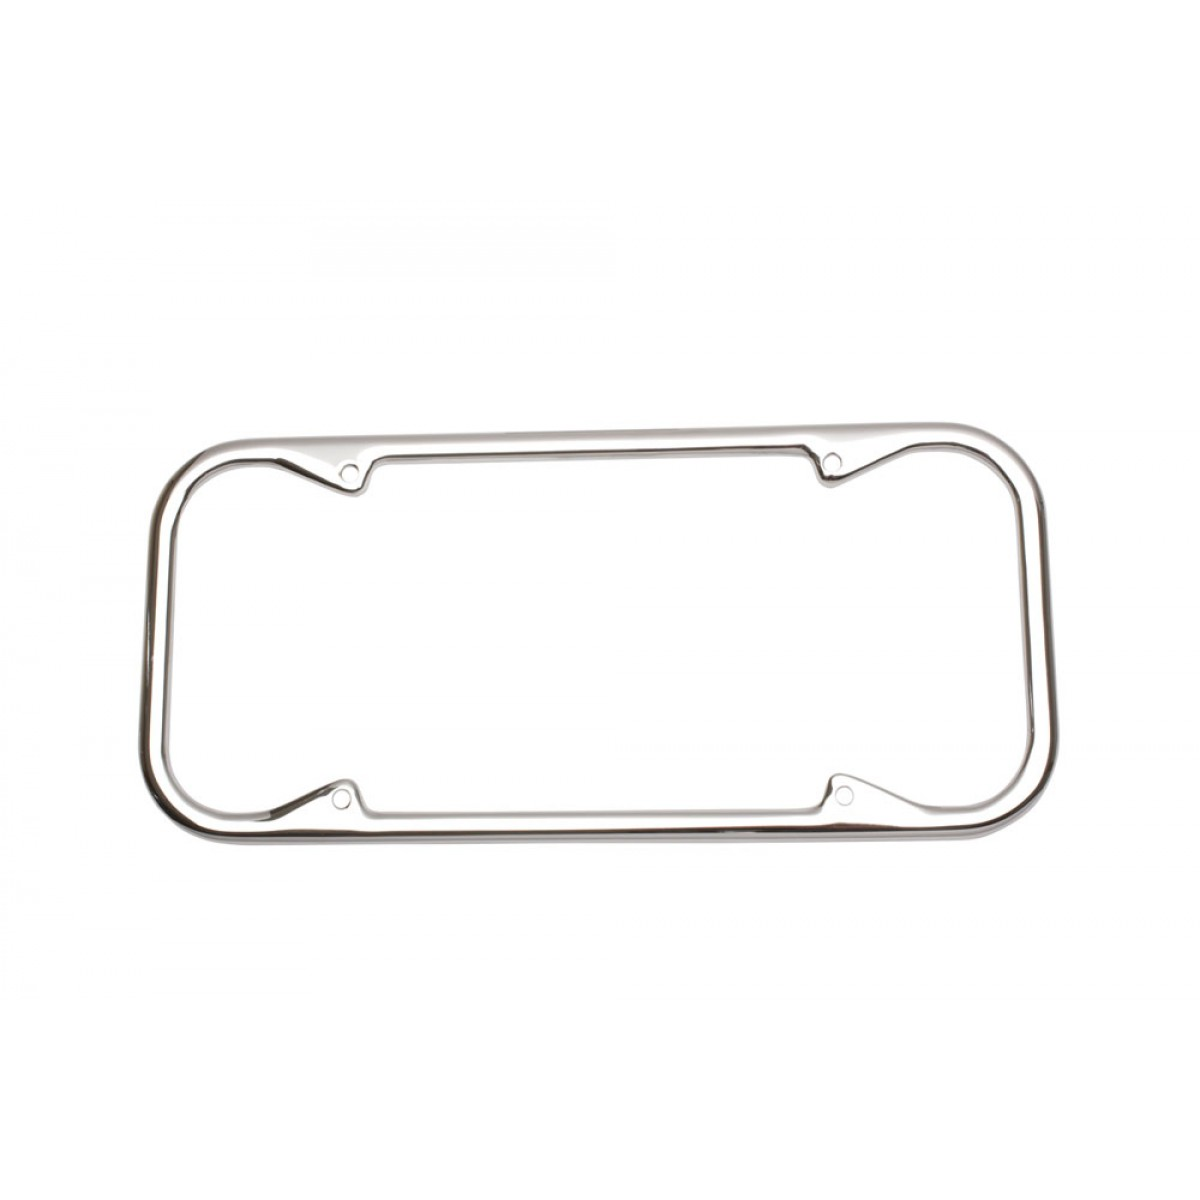 1940-55 Chevrolet License Plate Frame